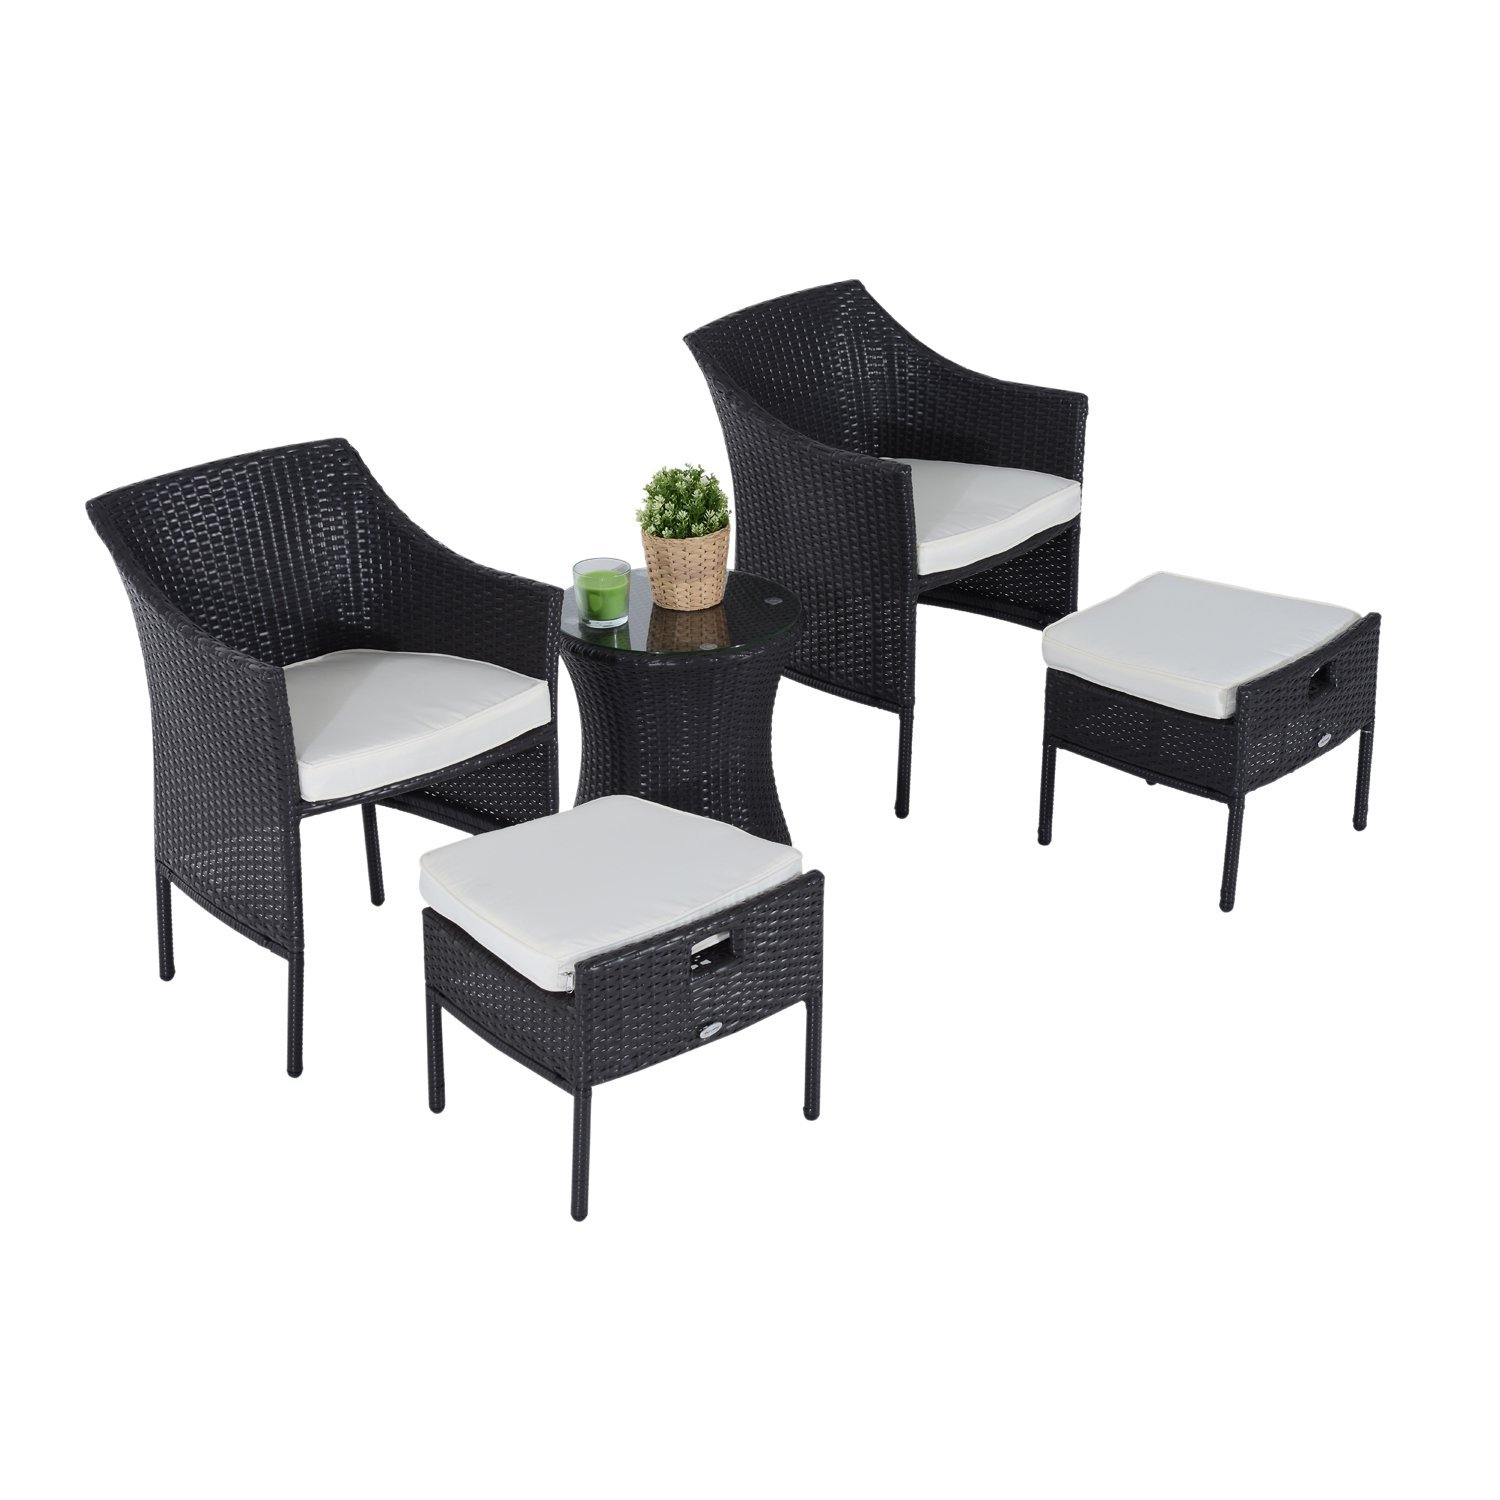 Image of £156.99 Outsunny 5 Pieces Rattan Coffee Set, Steel-Dark Brown / 5PC Bistro Set Wicker Armchair Footstool Glass Top Table Combo Garden Patio Furniture w/Cushion - Footrest Side 863-026 5056029887608